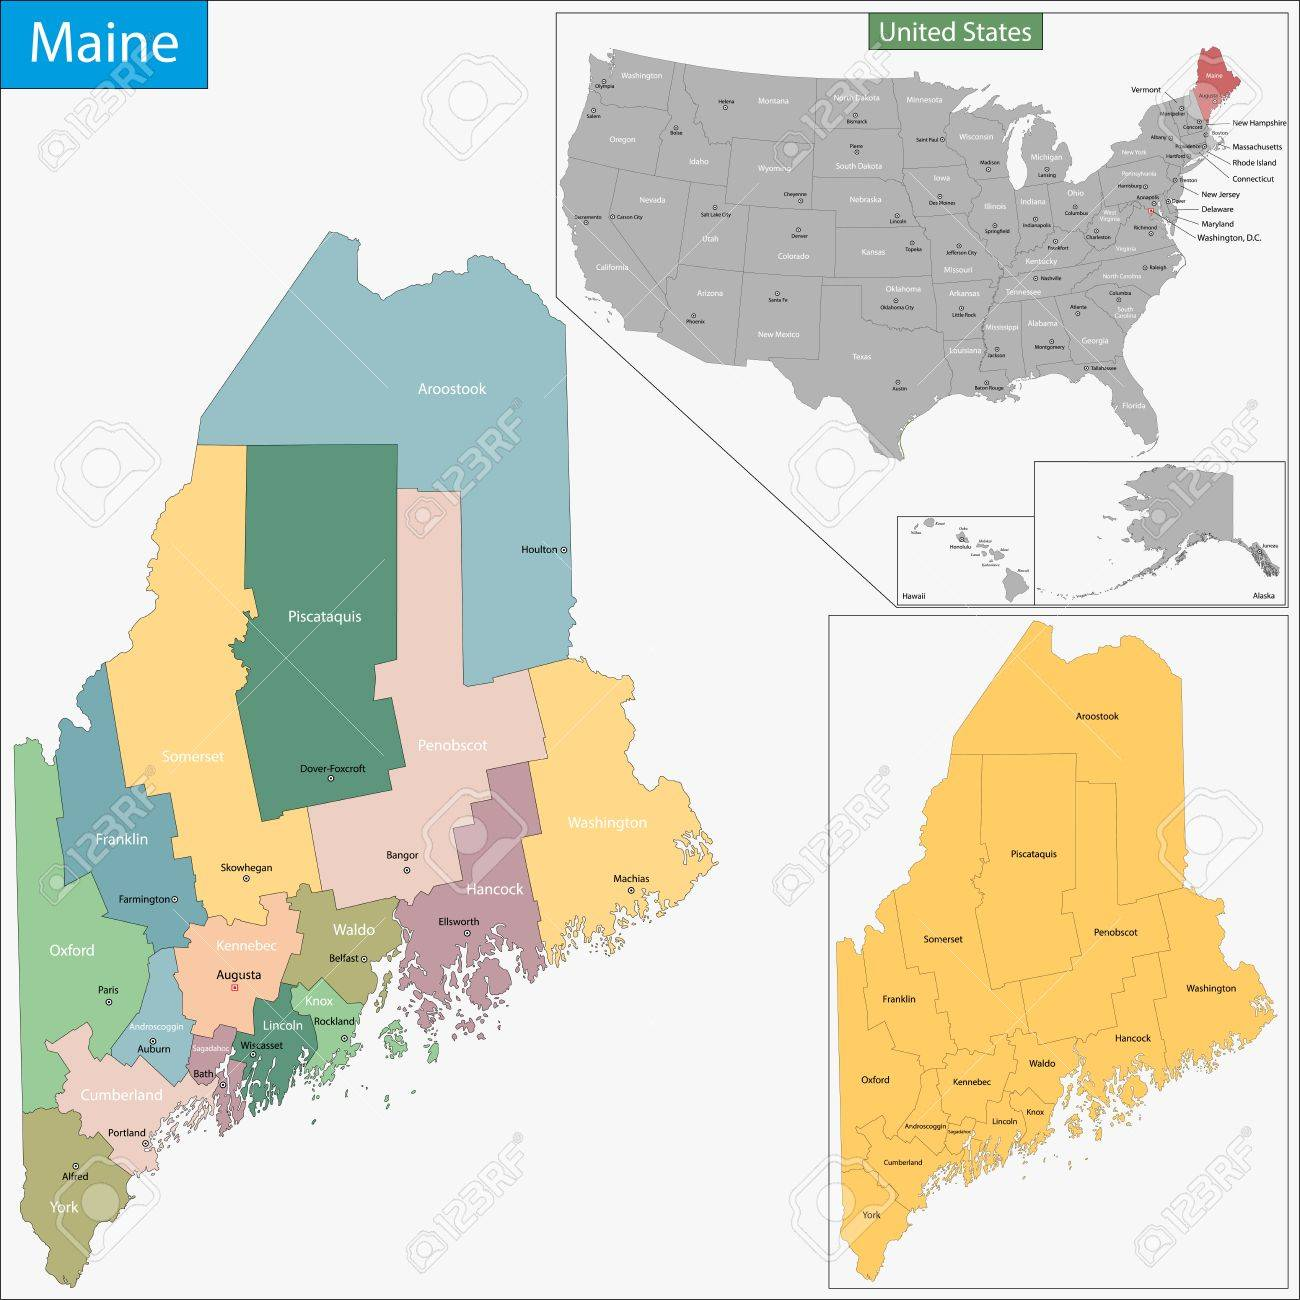 Map Of Maine State Designed In Illustration With The Counties - Maine state map